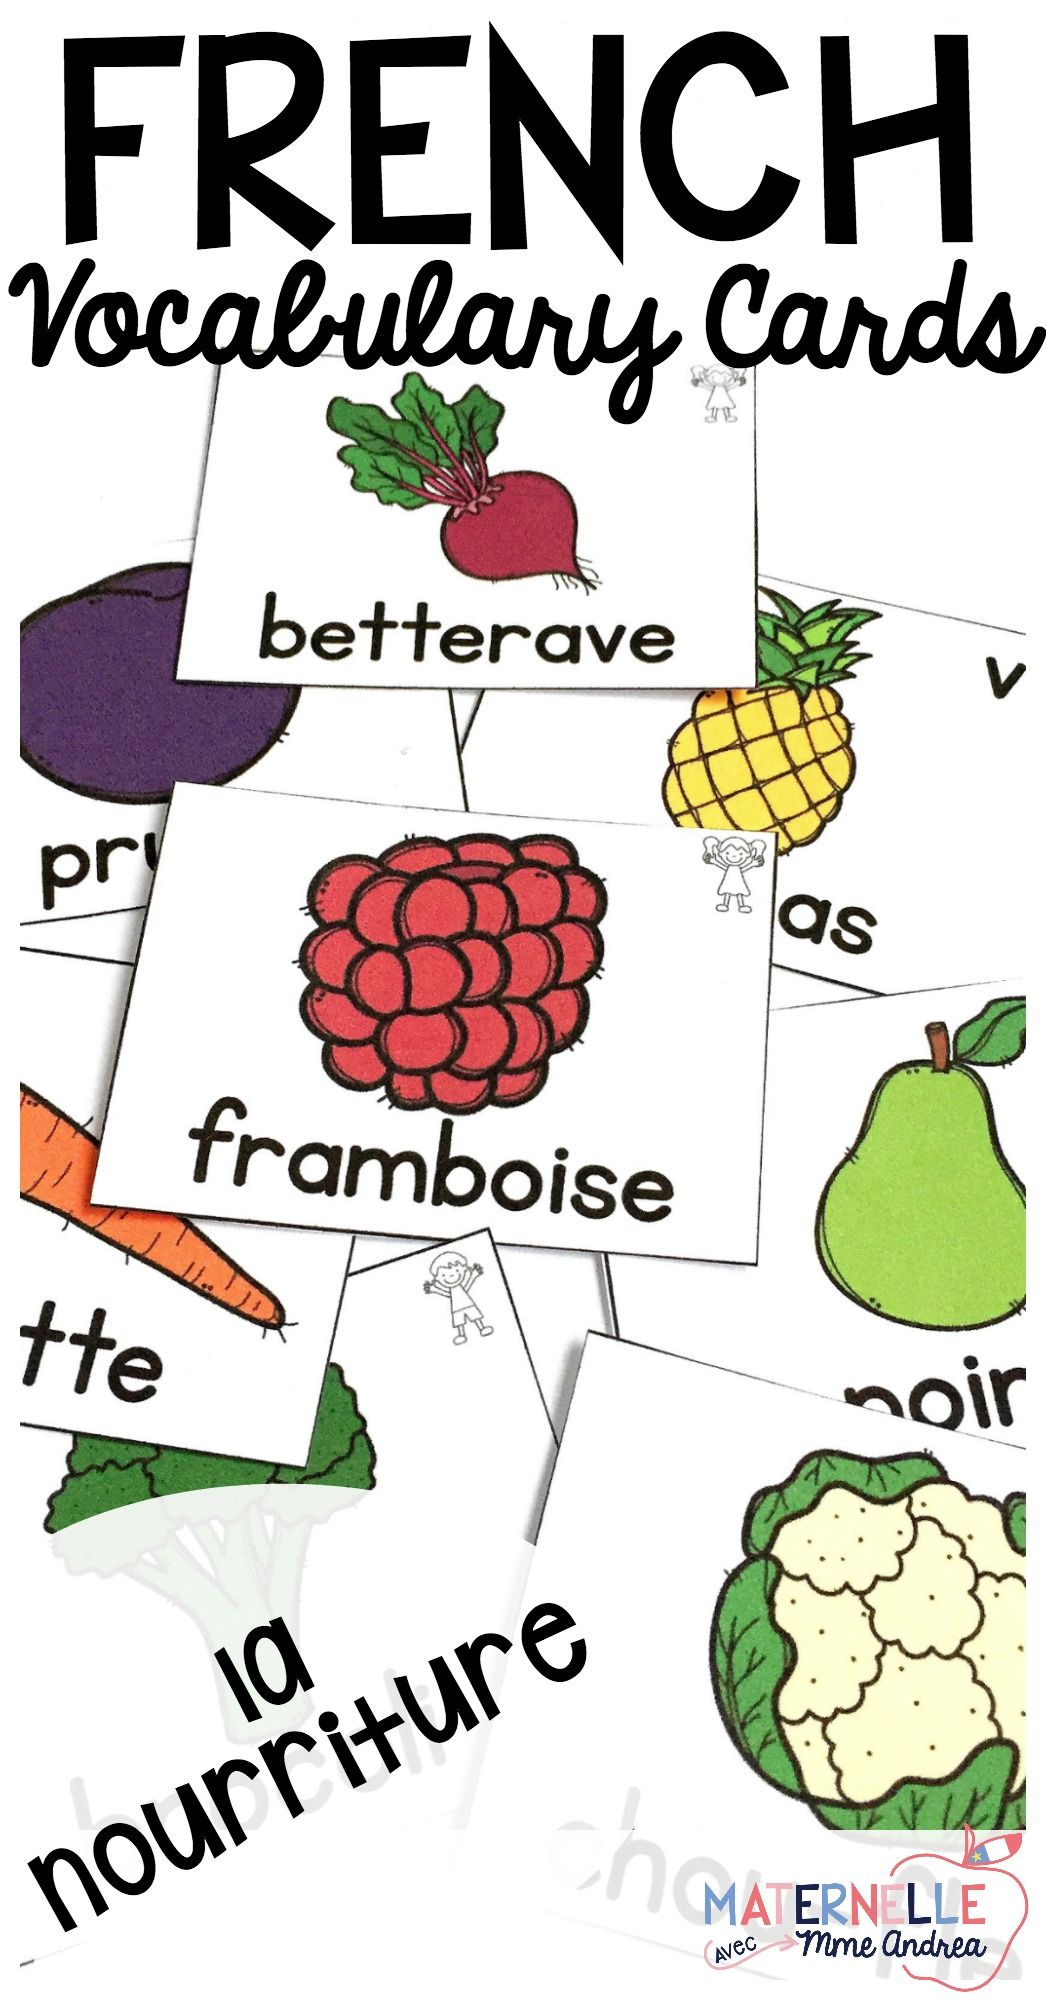 Top 12 Tips to Learn French Efficiently • French Today